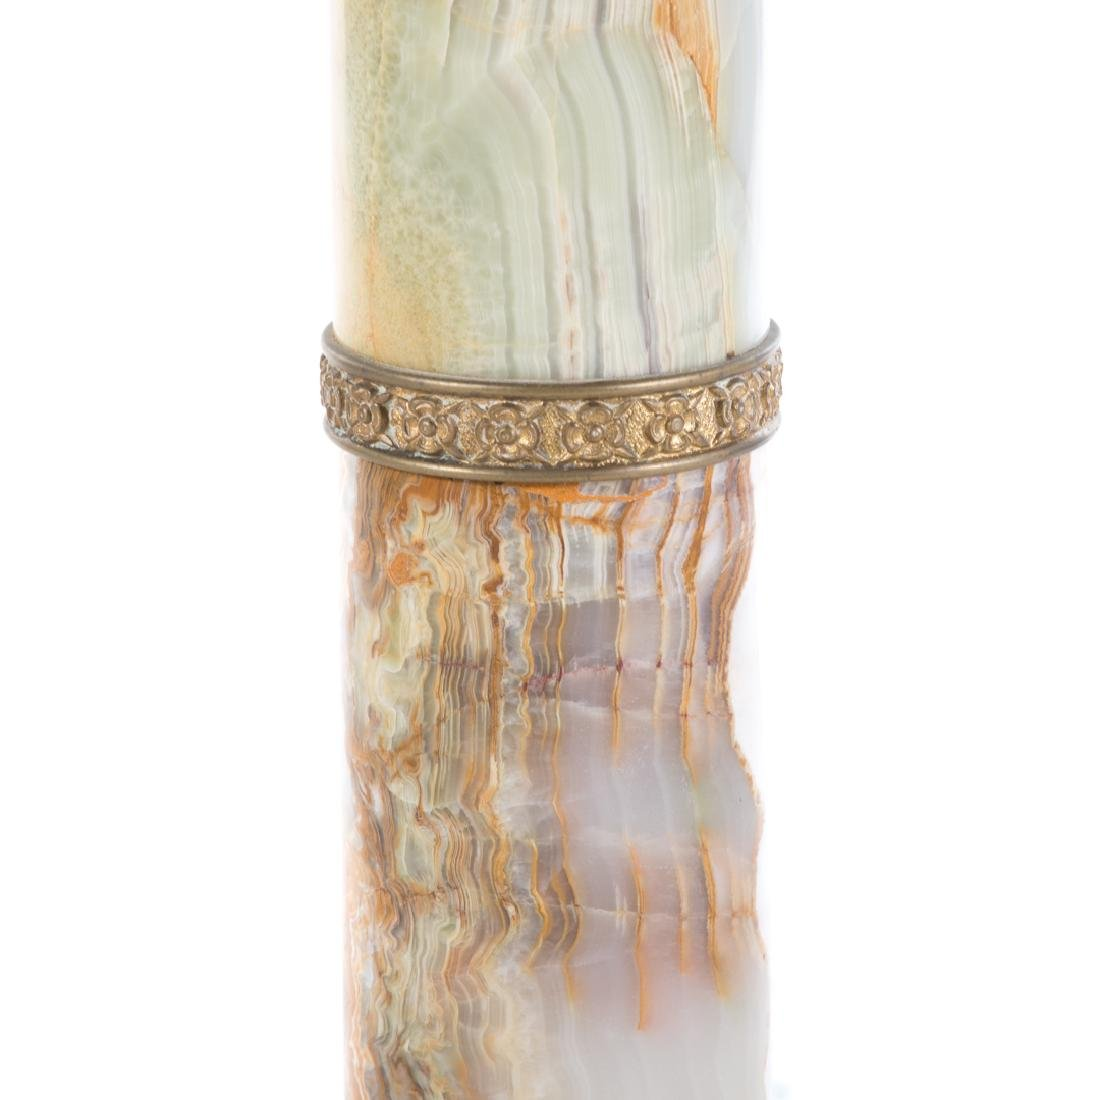 Classical style green onyx pedestal - 3